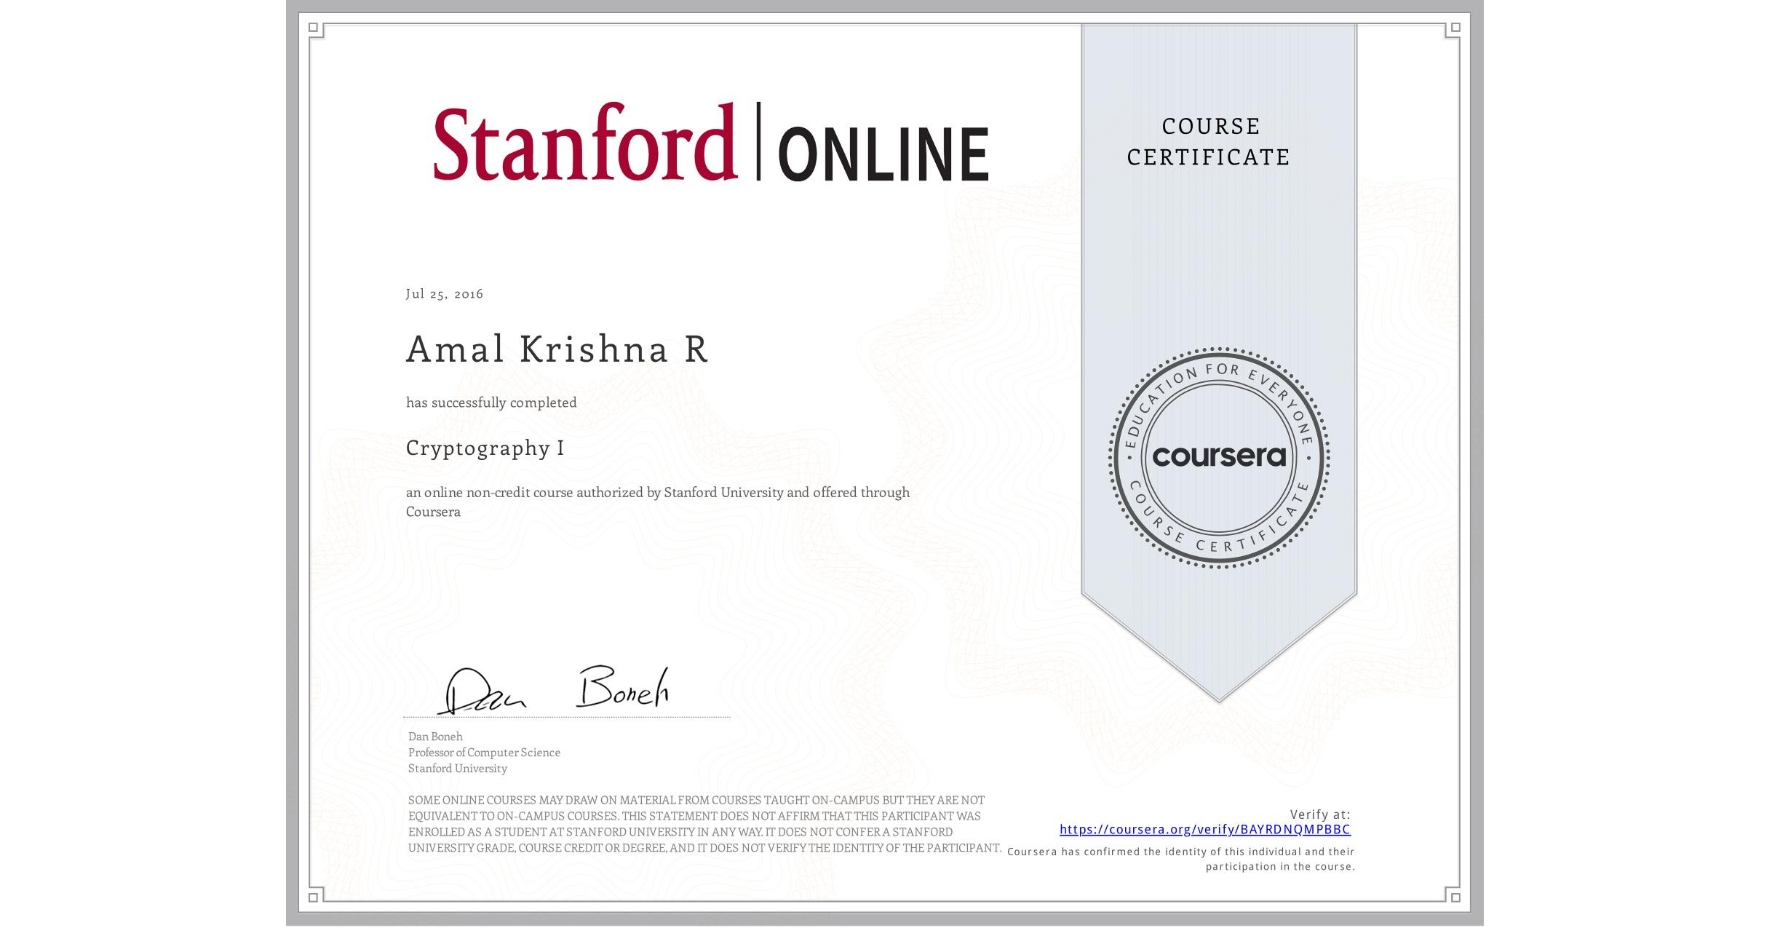 View certificate for Amal Krishna R, Cryptography I, an online non-credit course authorized by Stanford University and offered through Coursera